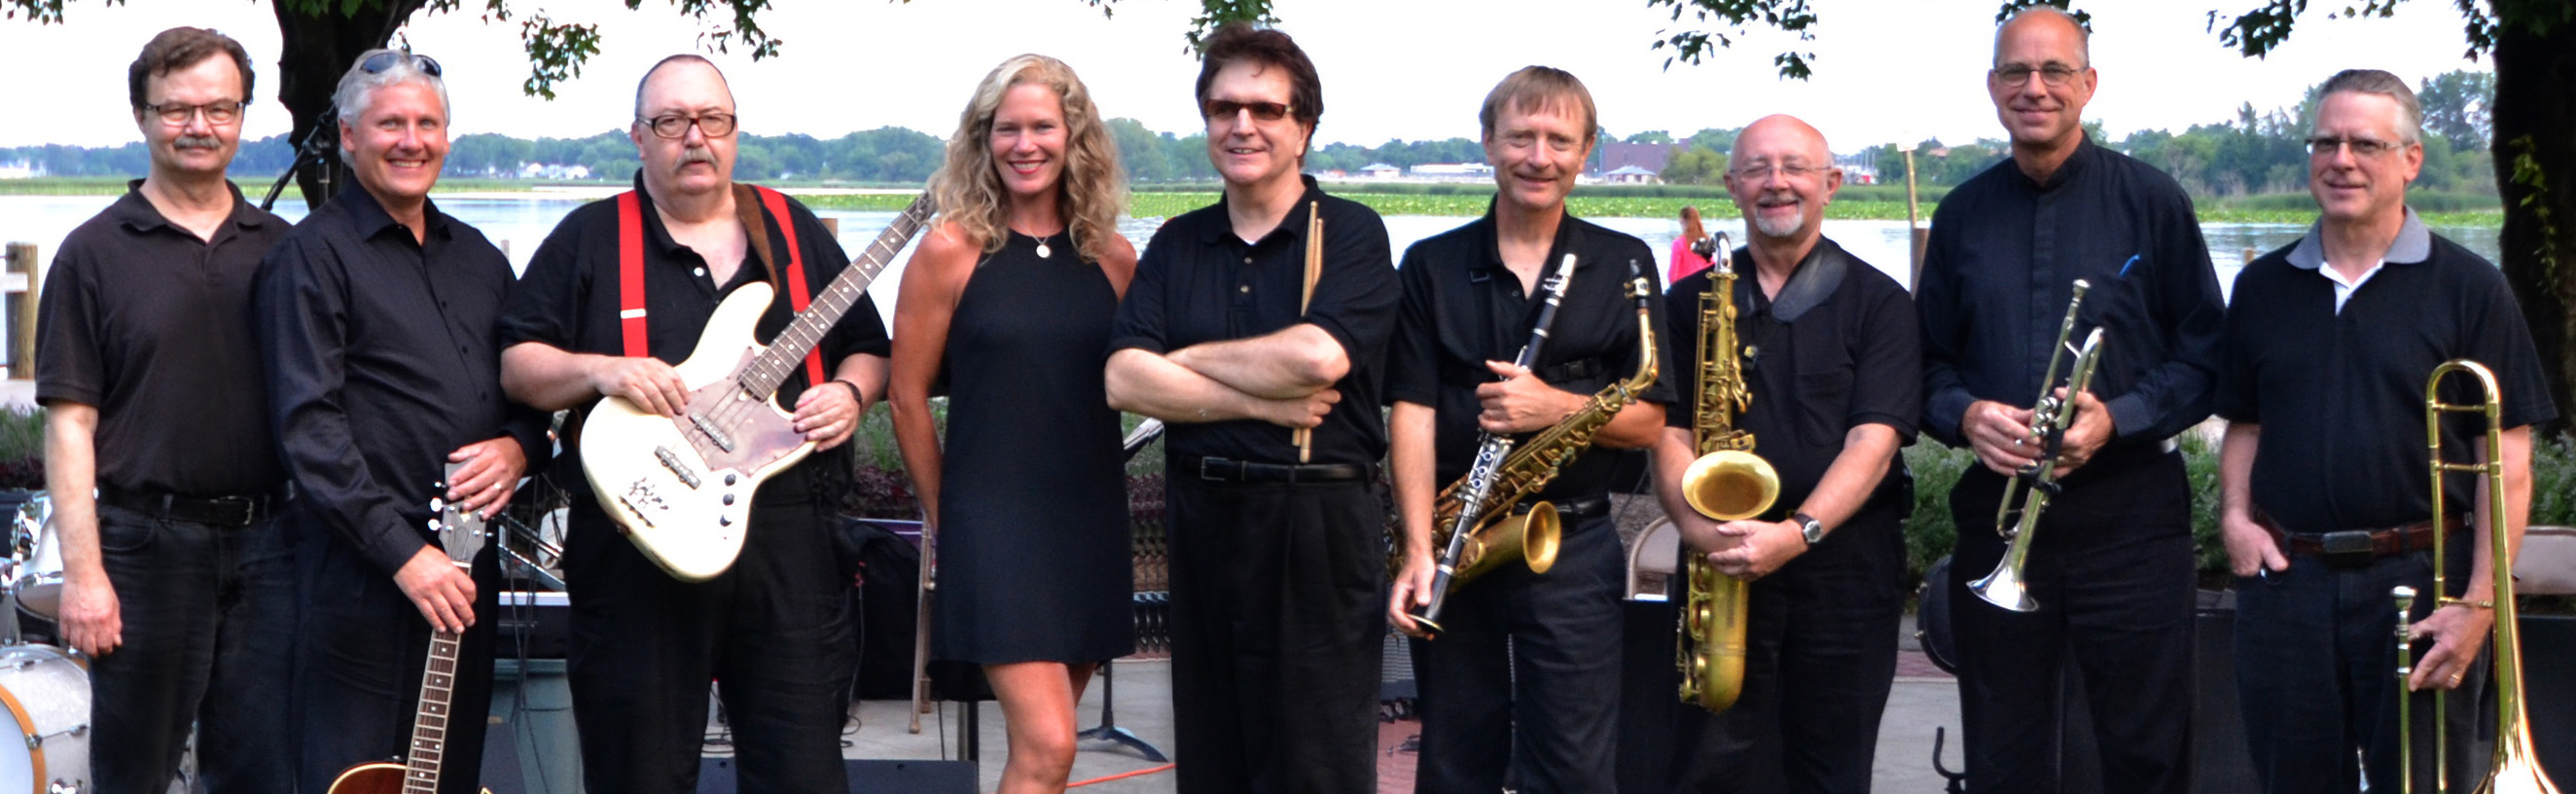 Gigs - The Rhythm Section Jazz Band